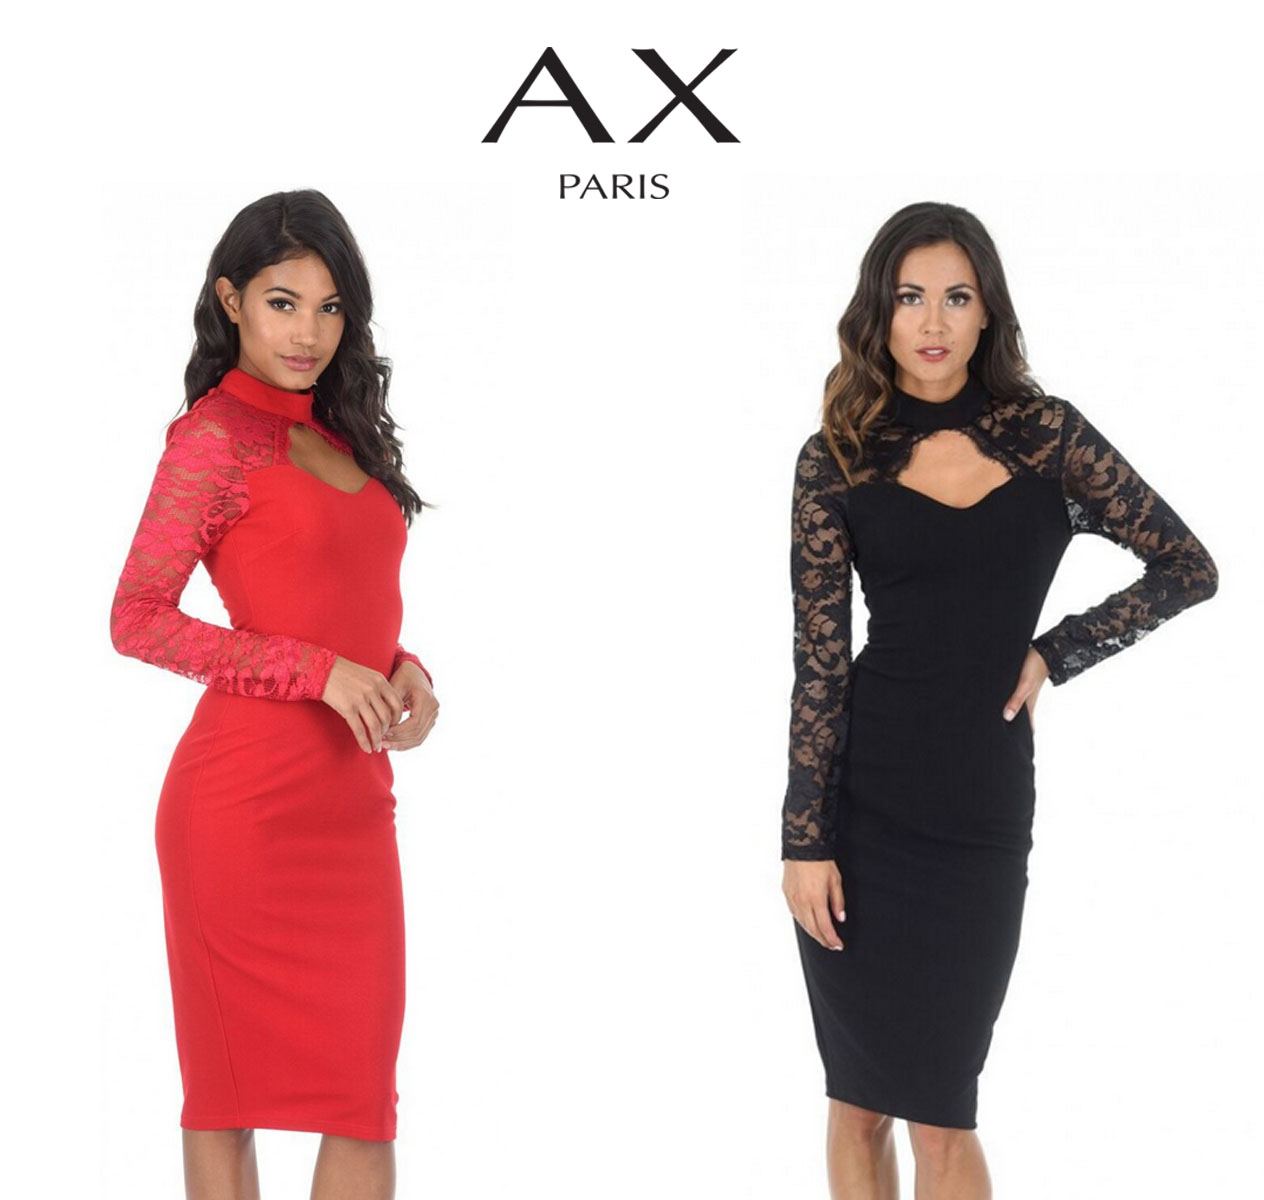 7f37b0d6207 Stun this season with this long sleeve lace bodycon with a flattering shape  and sweetheart cut out it s bound to steal the show!